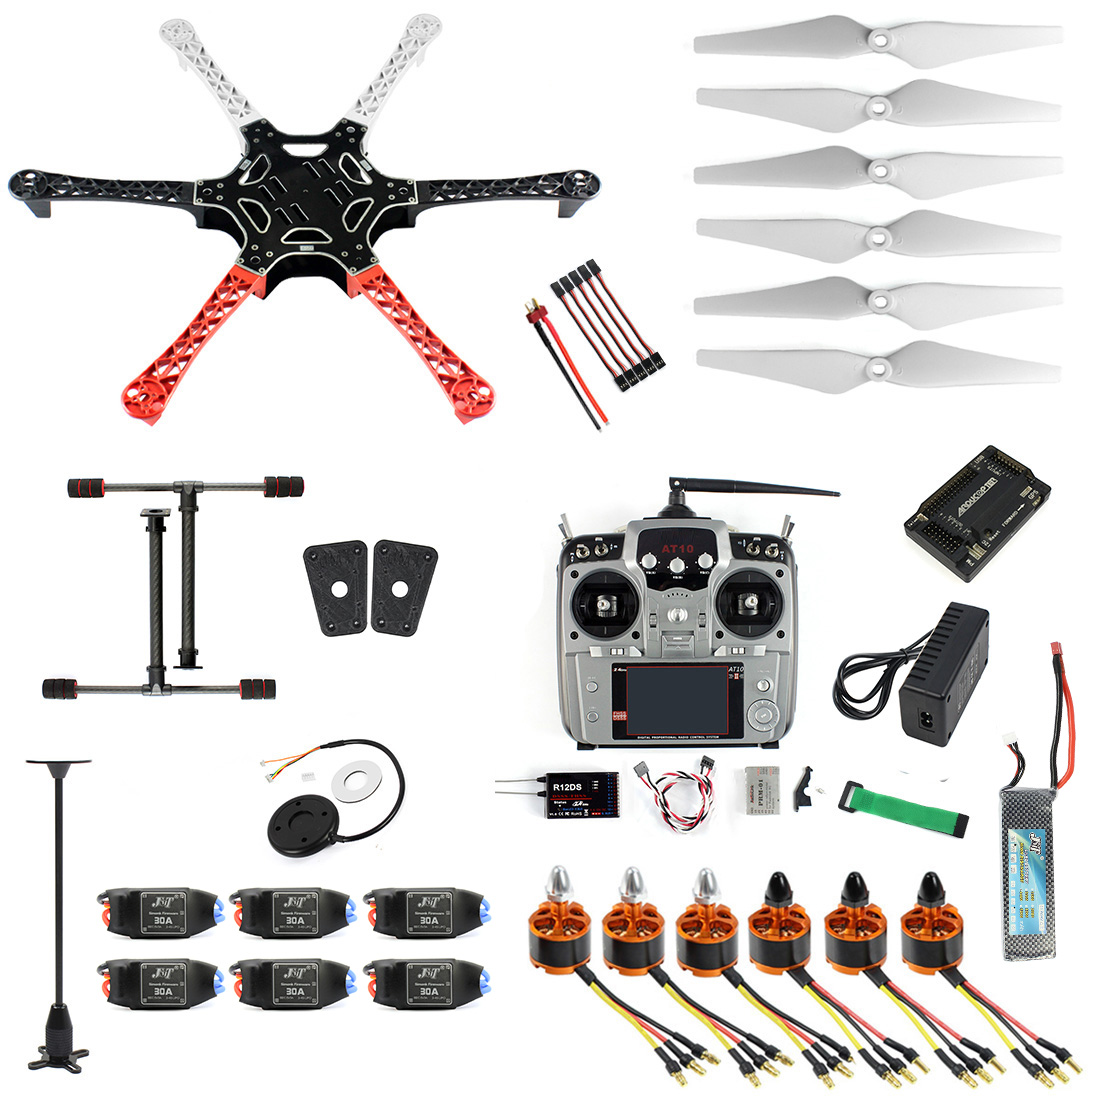 DIY Drone Kit 6-axis RC Aircraft Hexacopter Helicopter RTF Drone with AT10 TX/<font><b>RX</b></font> <font><b>550</b></font> Frame GPS APM2.8 Flight Controller Battery image